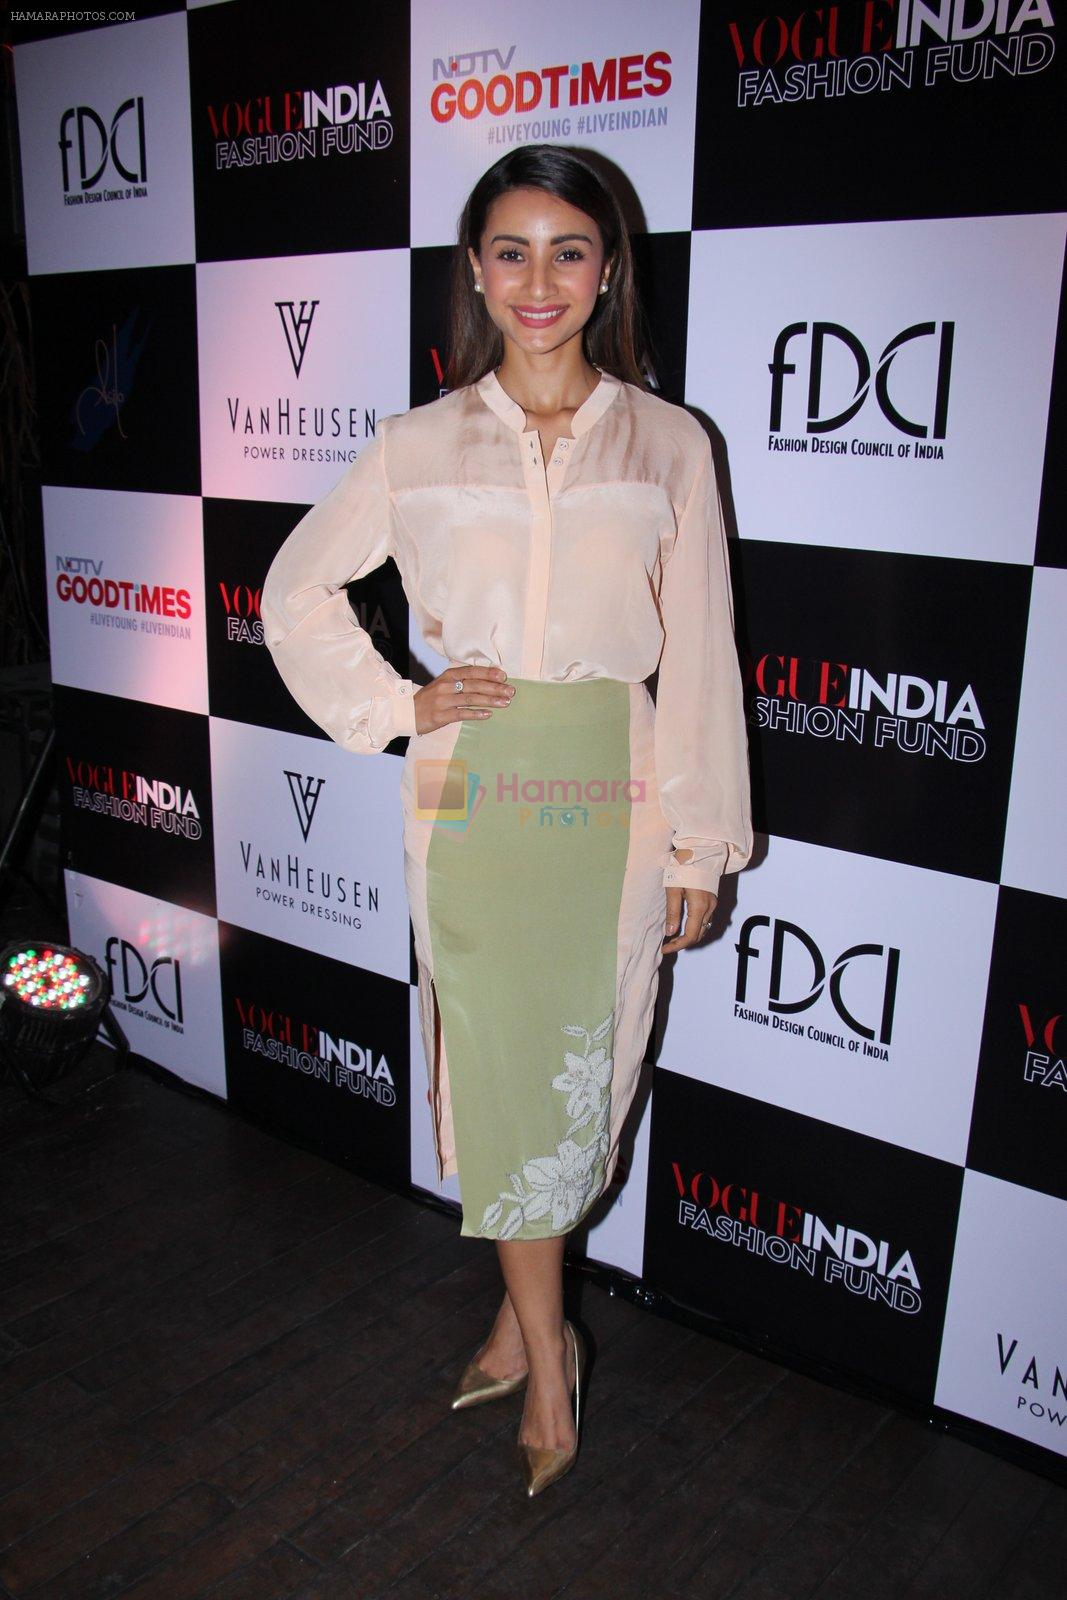 Patralekha at Vogue India Fashion Fund Event on 29th Nov 2016